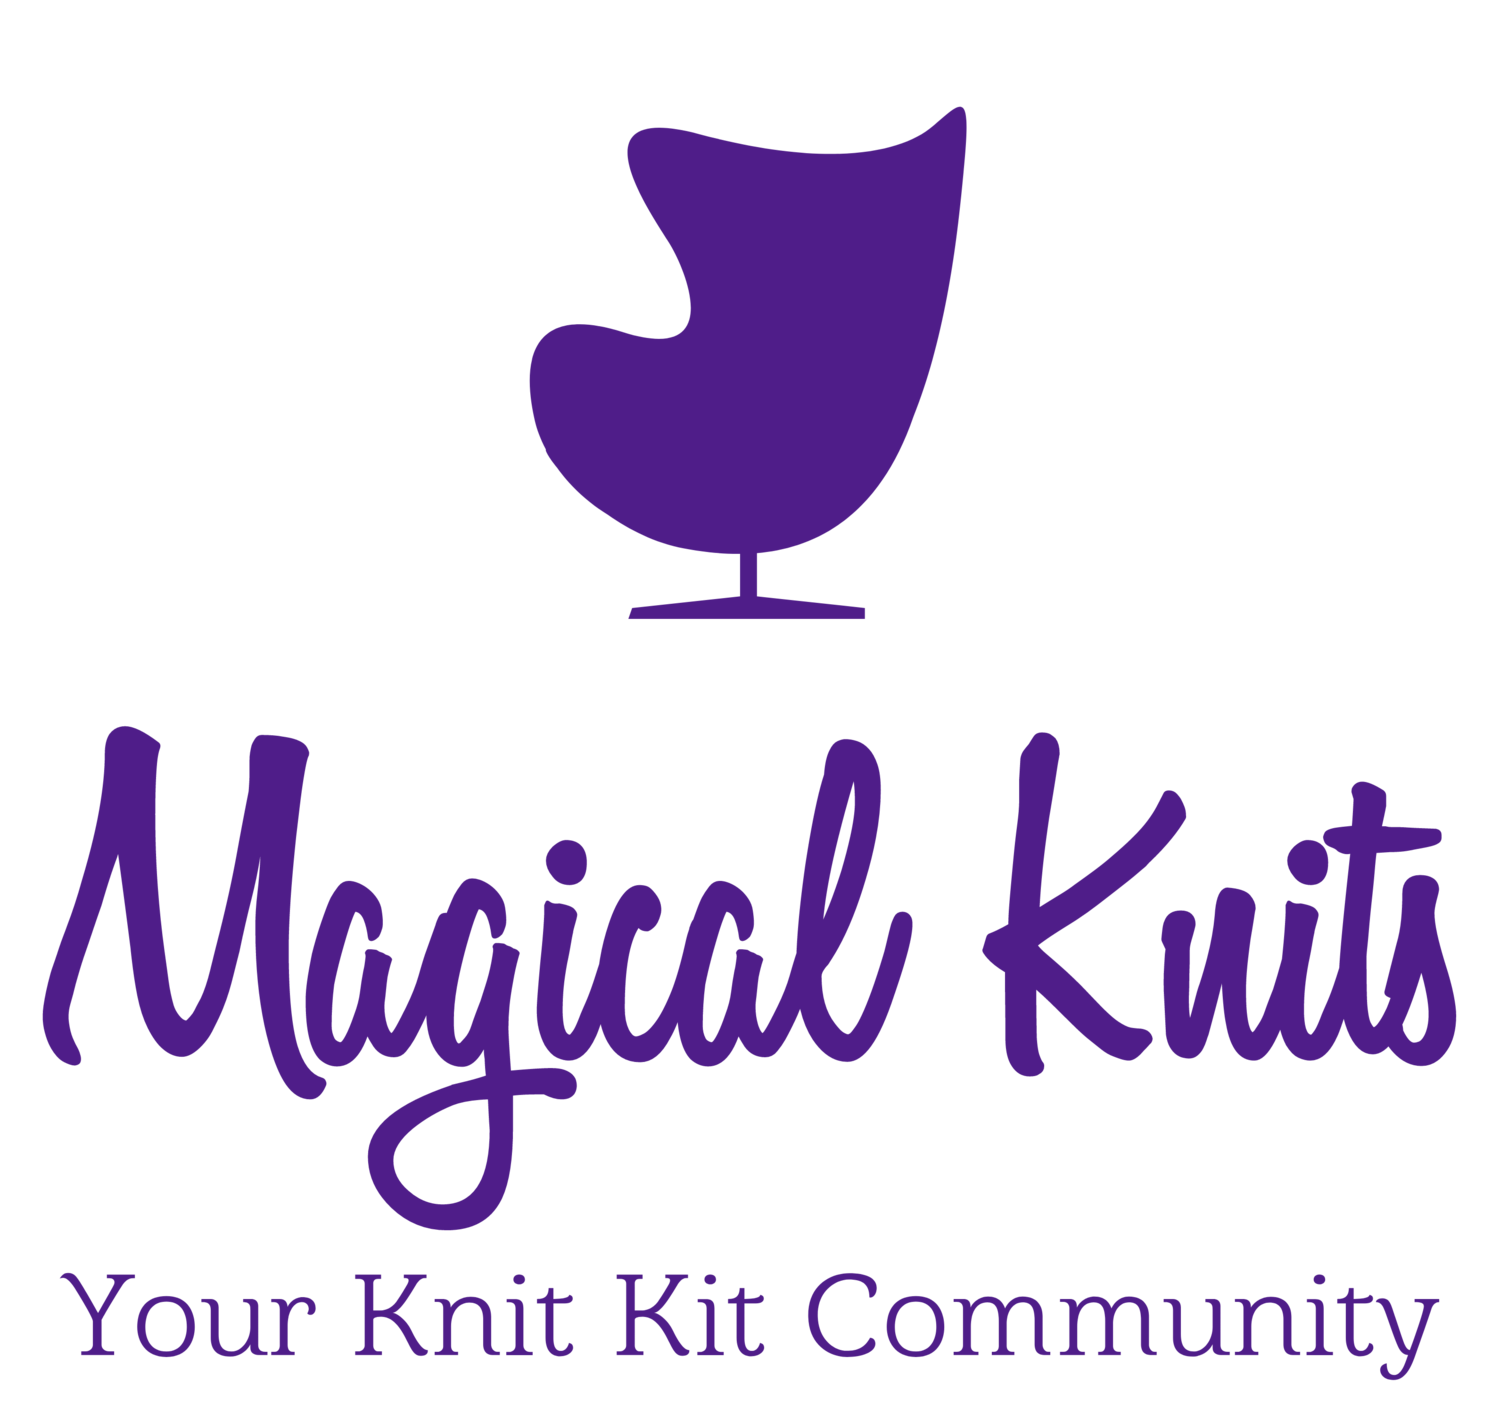 Magical Knit Kits